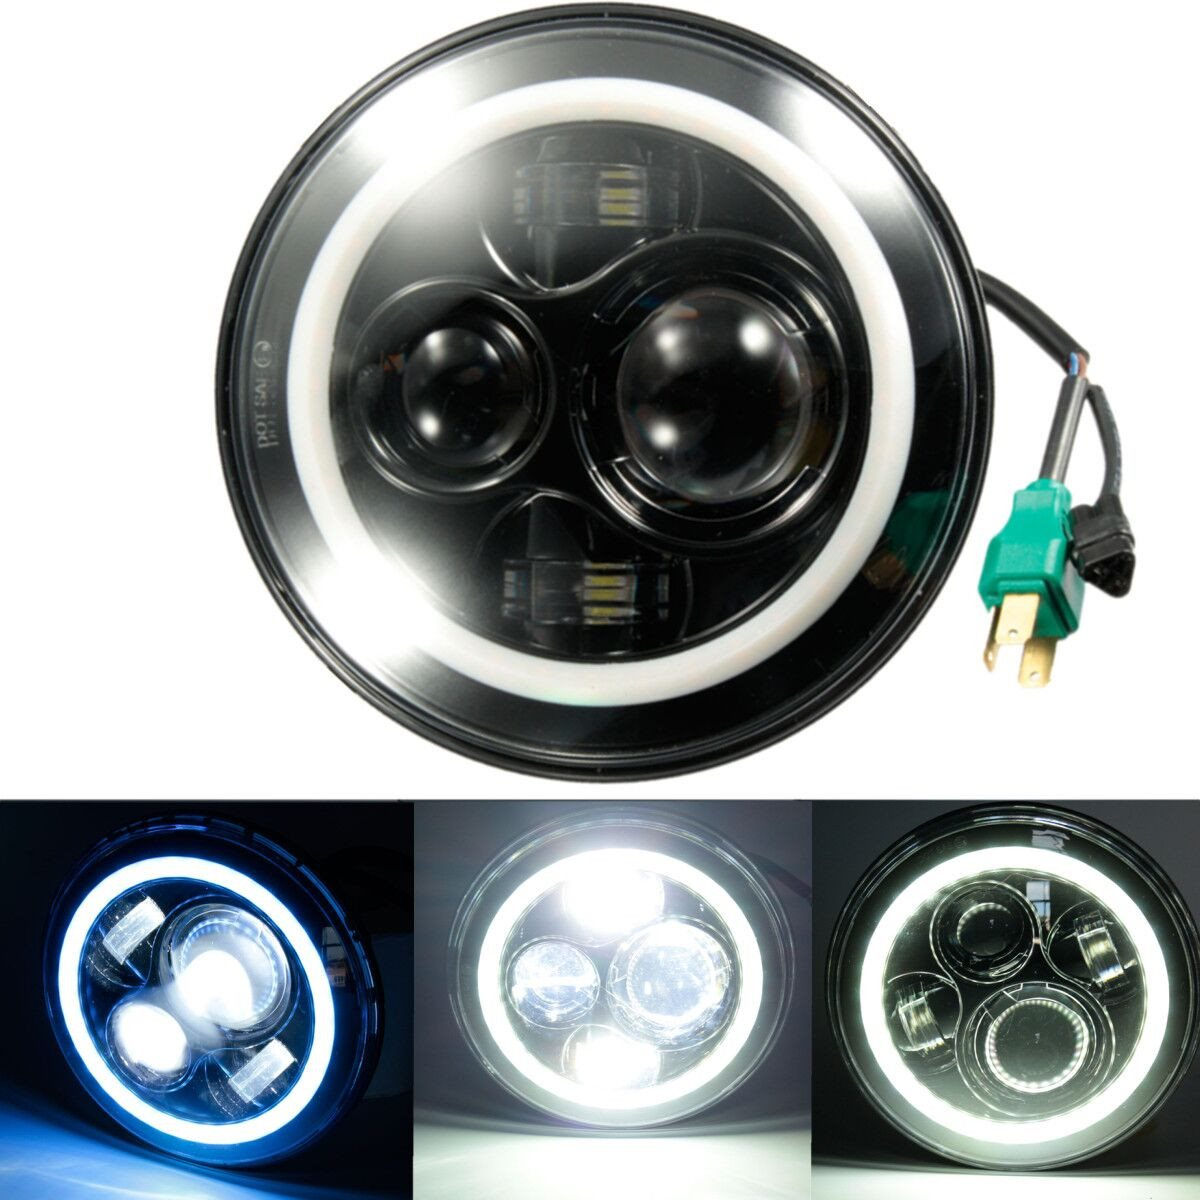 Angel Eyes 7 Inch LED Headlight For Jeep 97-15/Wrangler/JK/TJ/LJ H4 Hi-lo Beam Front Driving Headlamp Car Styling 7 inch 60w led headlight drl white turn singal hi lo beam headlamp bulb fit jeep wrangler jk tj sahara unlimited hummer h1 h2